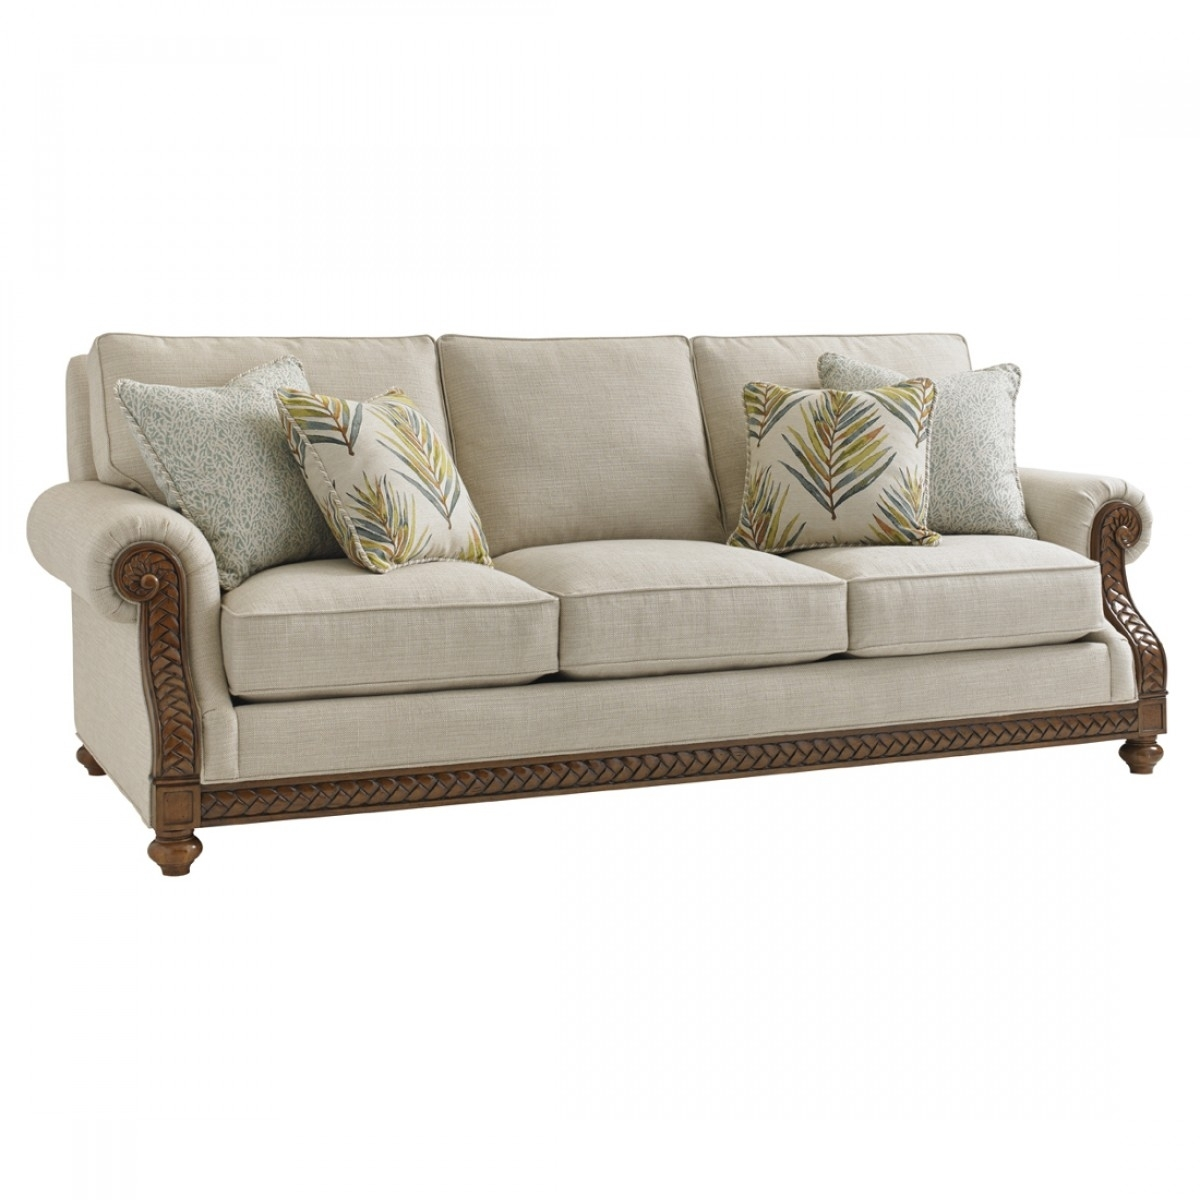 Tommy Bahama Home Bali Hai Shoreline Sofa Pertaining To Marcus Oyster 6 Piece Sectionals With Power Headrest And Usb (Image 15 of 25)